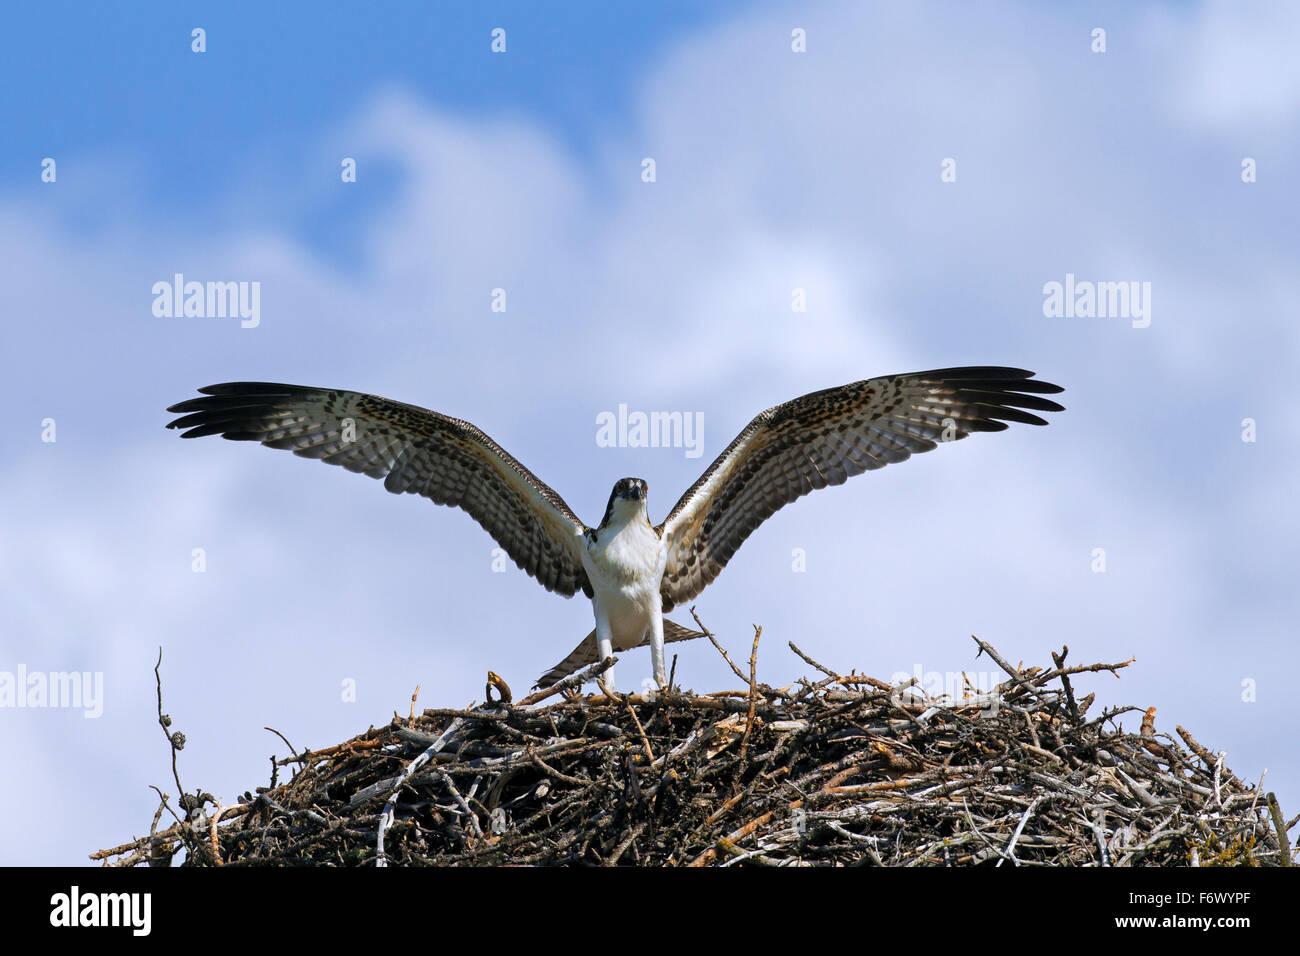 Osprey (Pandion haliaetus) juvenile exercising by flapping wings on nest - Stock Image